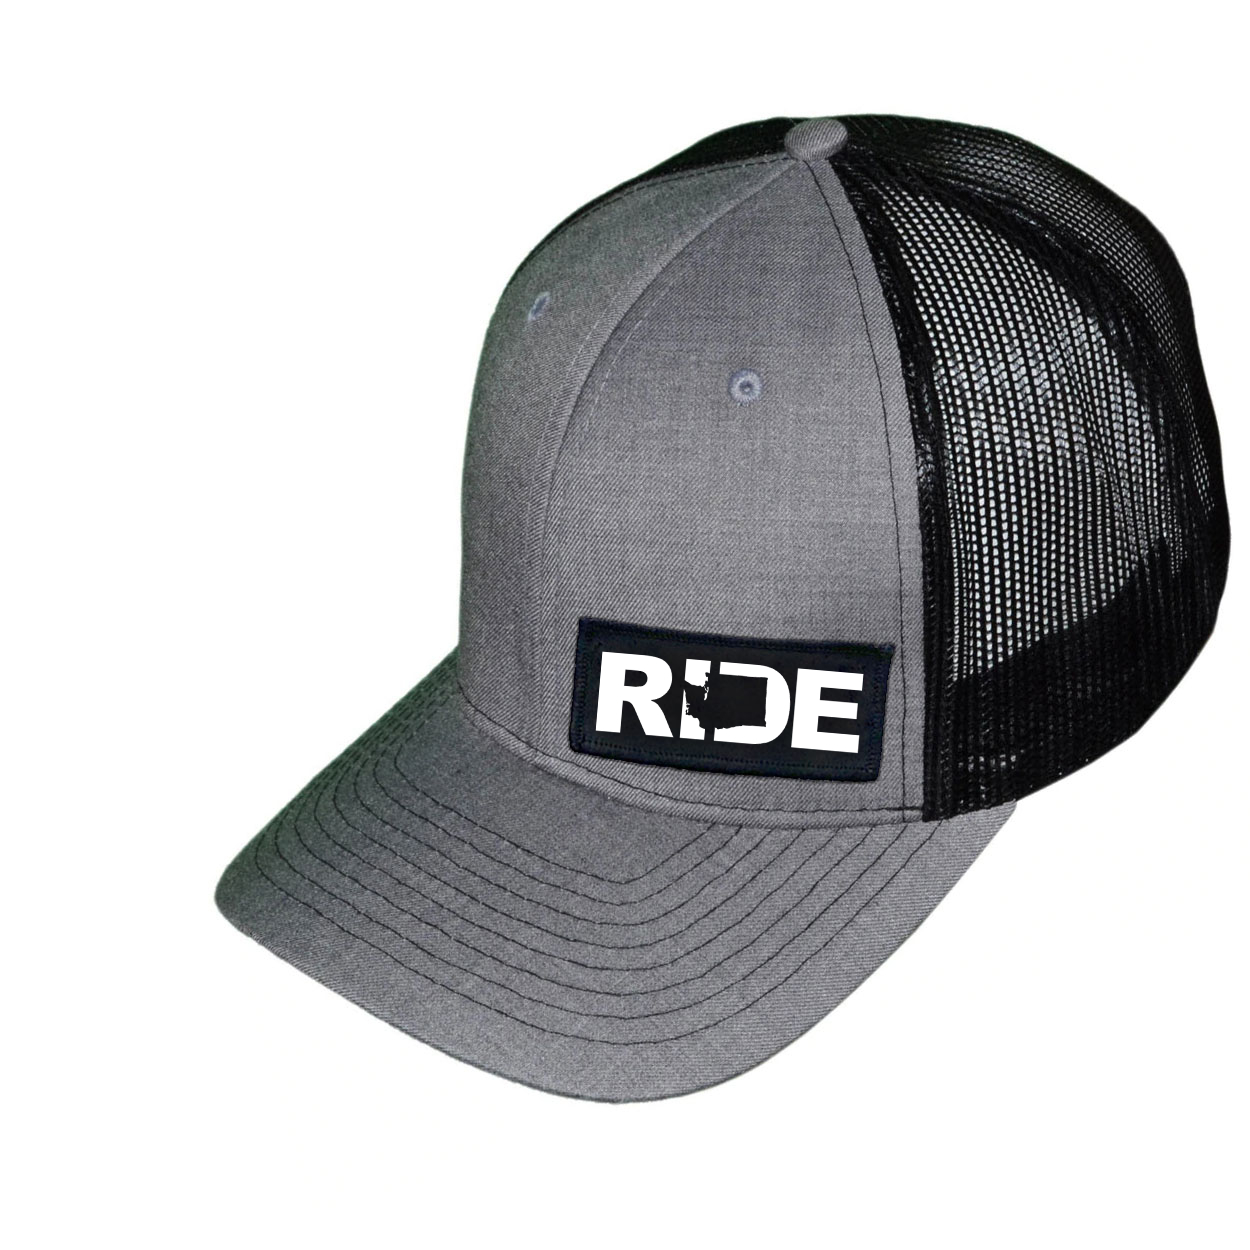 Ride Washington Night Out Woven Patch Snapback Trucker Hat Heather Gray/Black (White Logo)